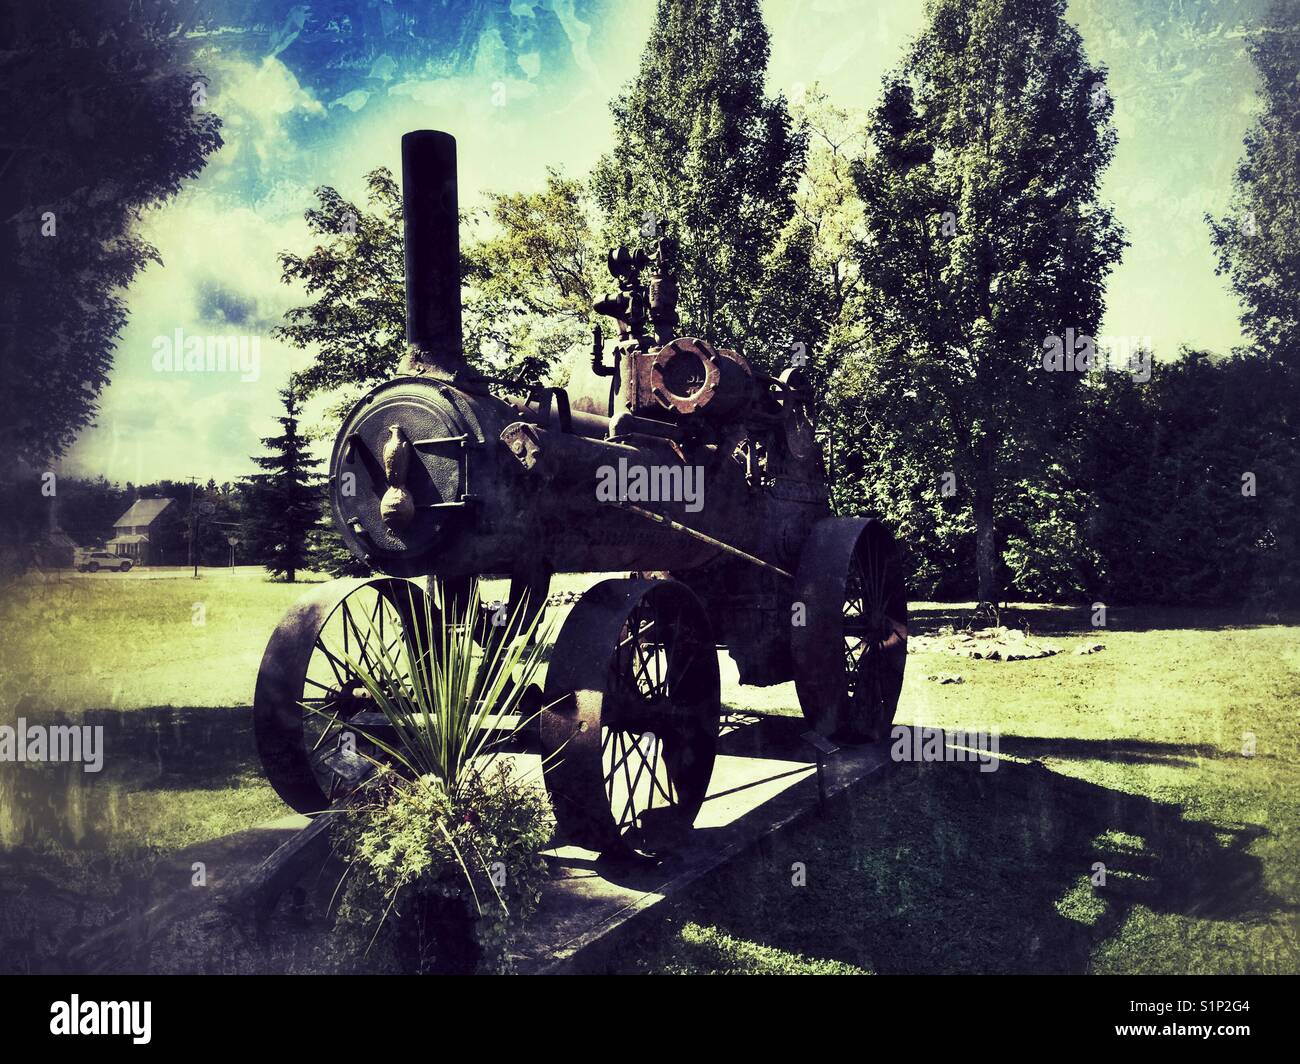 An old historic locomotive engine. - Stock Image